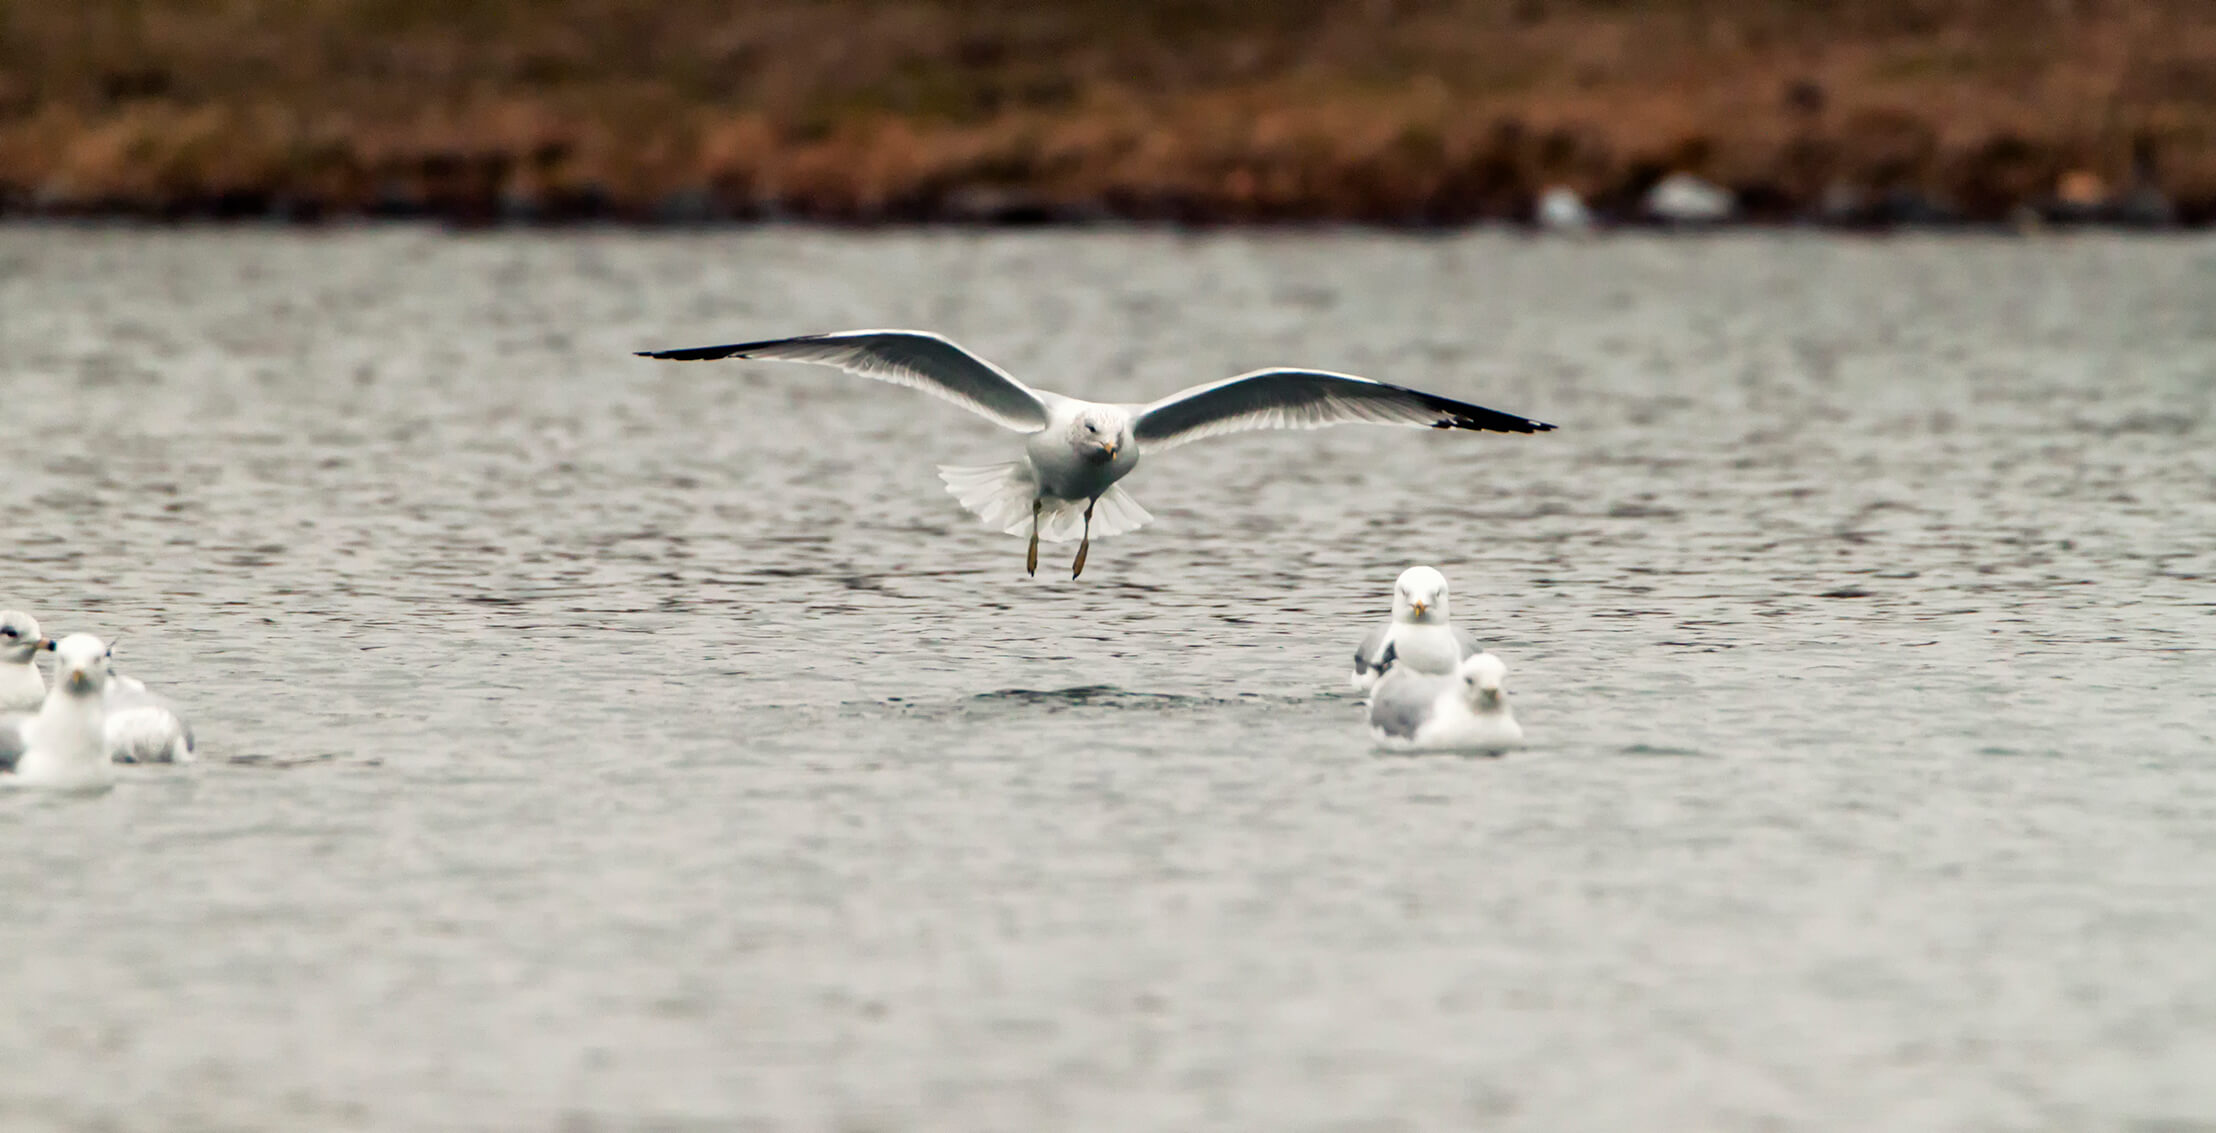 Seagull landing in the water